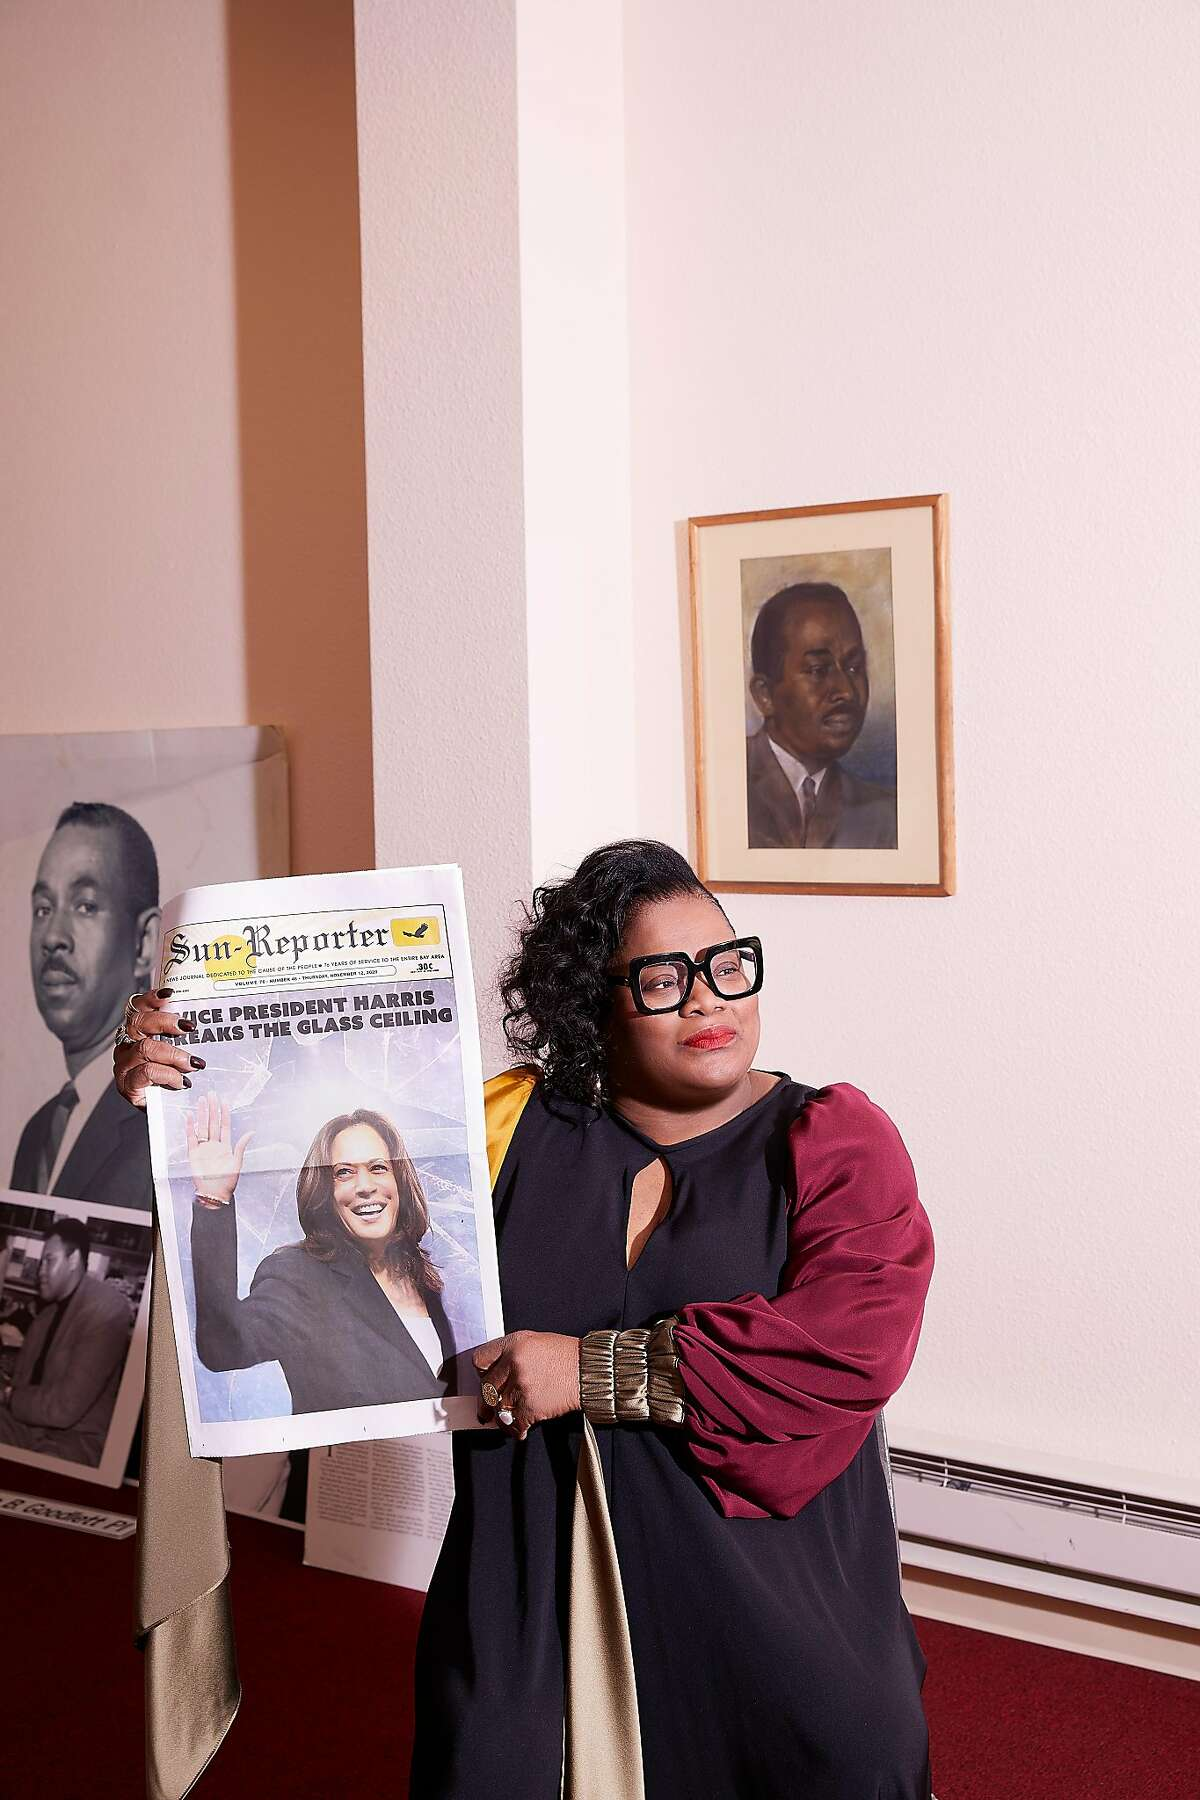 Sun-Reporter publisher Amelia Ashley-Ward poses in front of pictures of Dr. Carlton Goodlett, the iconic co-founder of the newspaper and an influential civil rights leader. She holds the Nov. 12, 2020, edition of her publication with then Vice President-elect Kamala Harris on the cover.